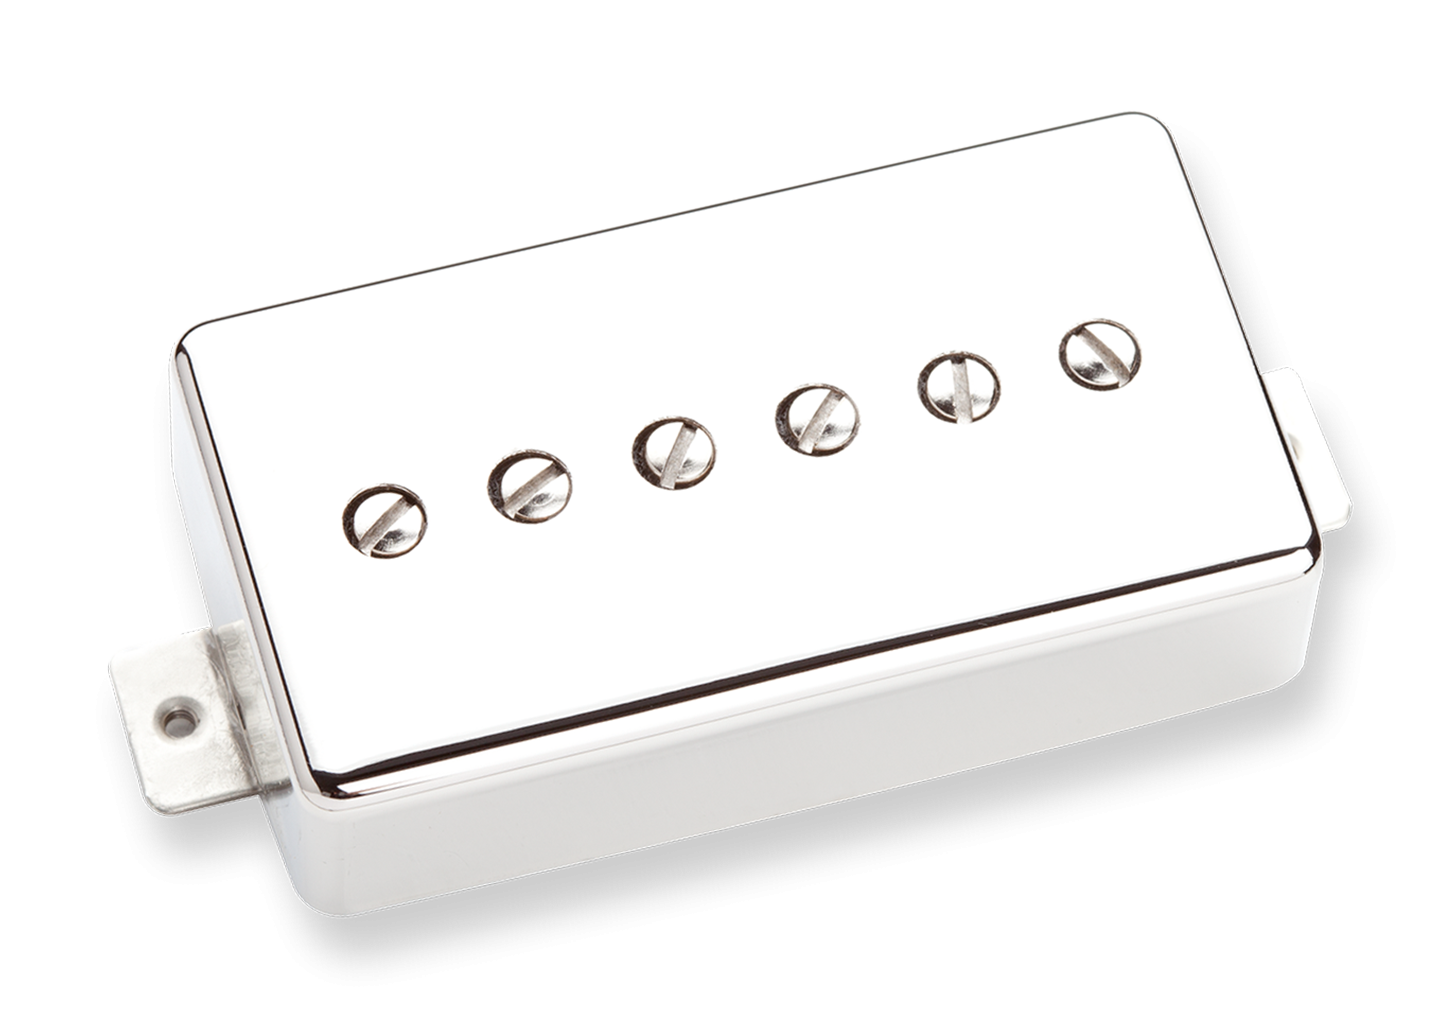 Seymour Duncan Phat Cat - SPH90-1N Neck Nickel Cover